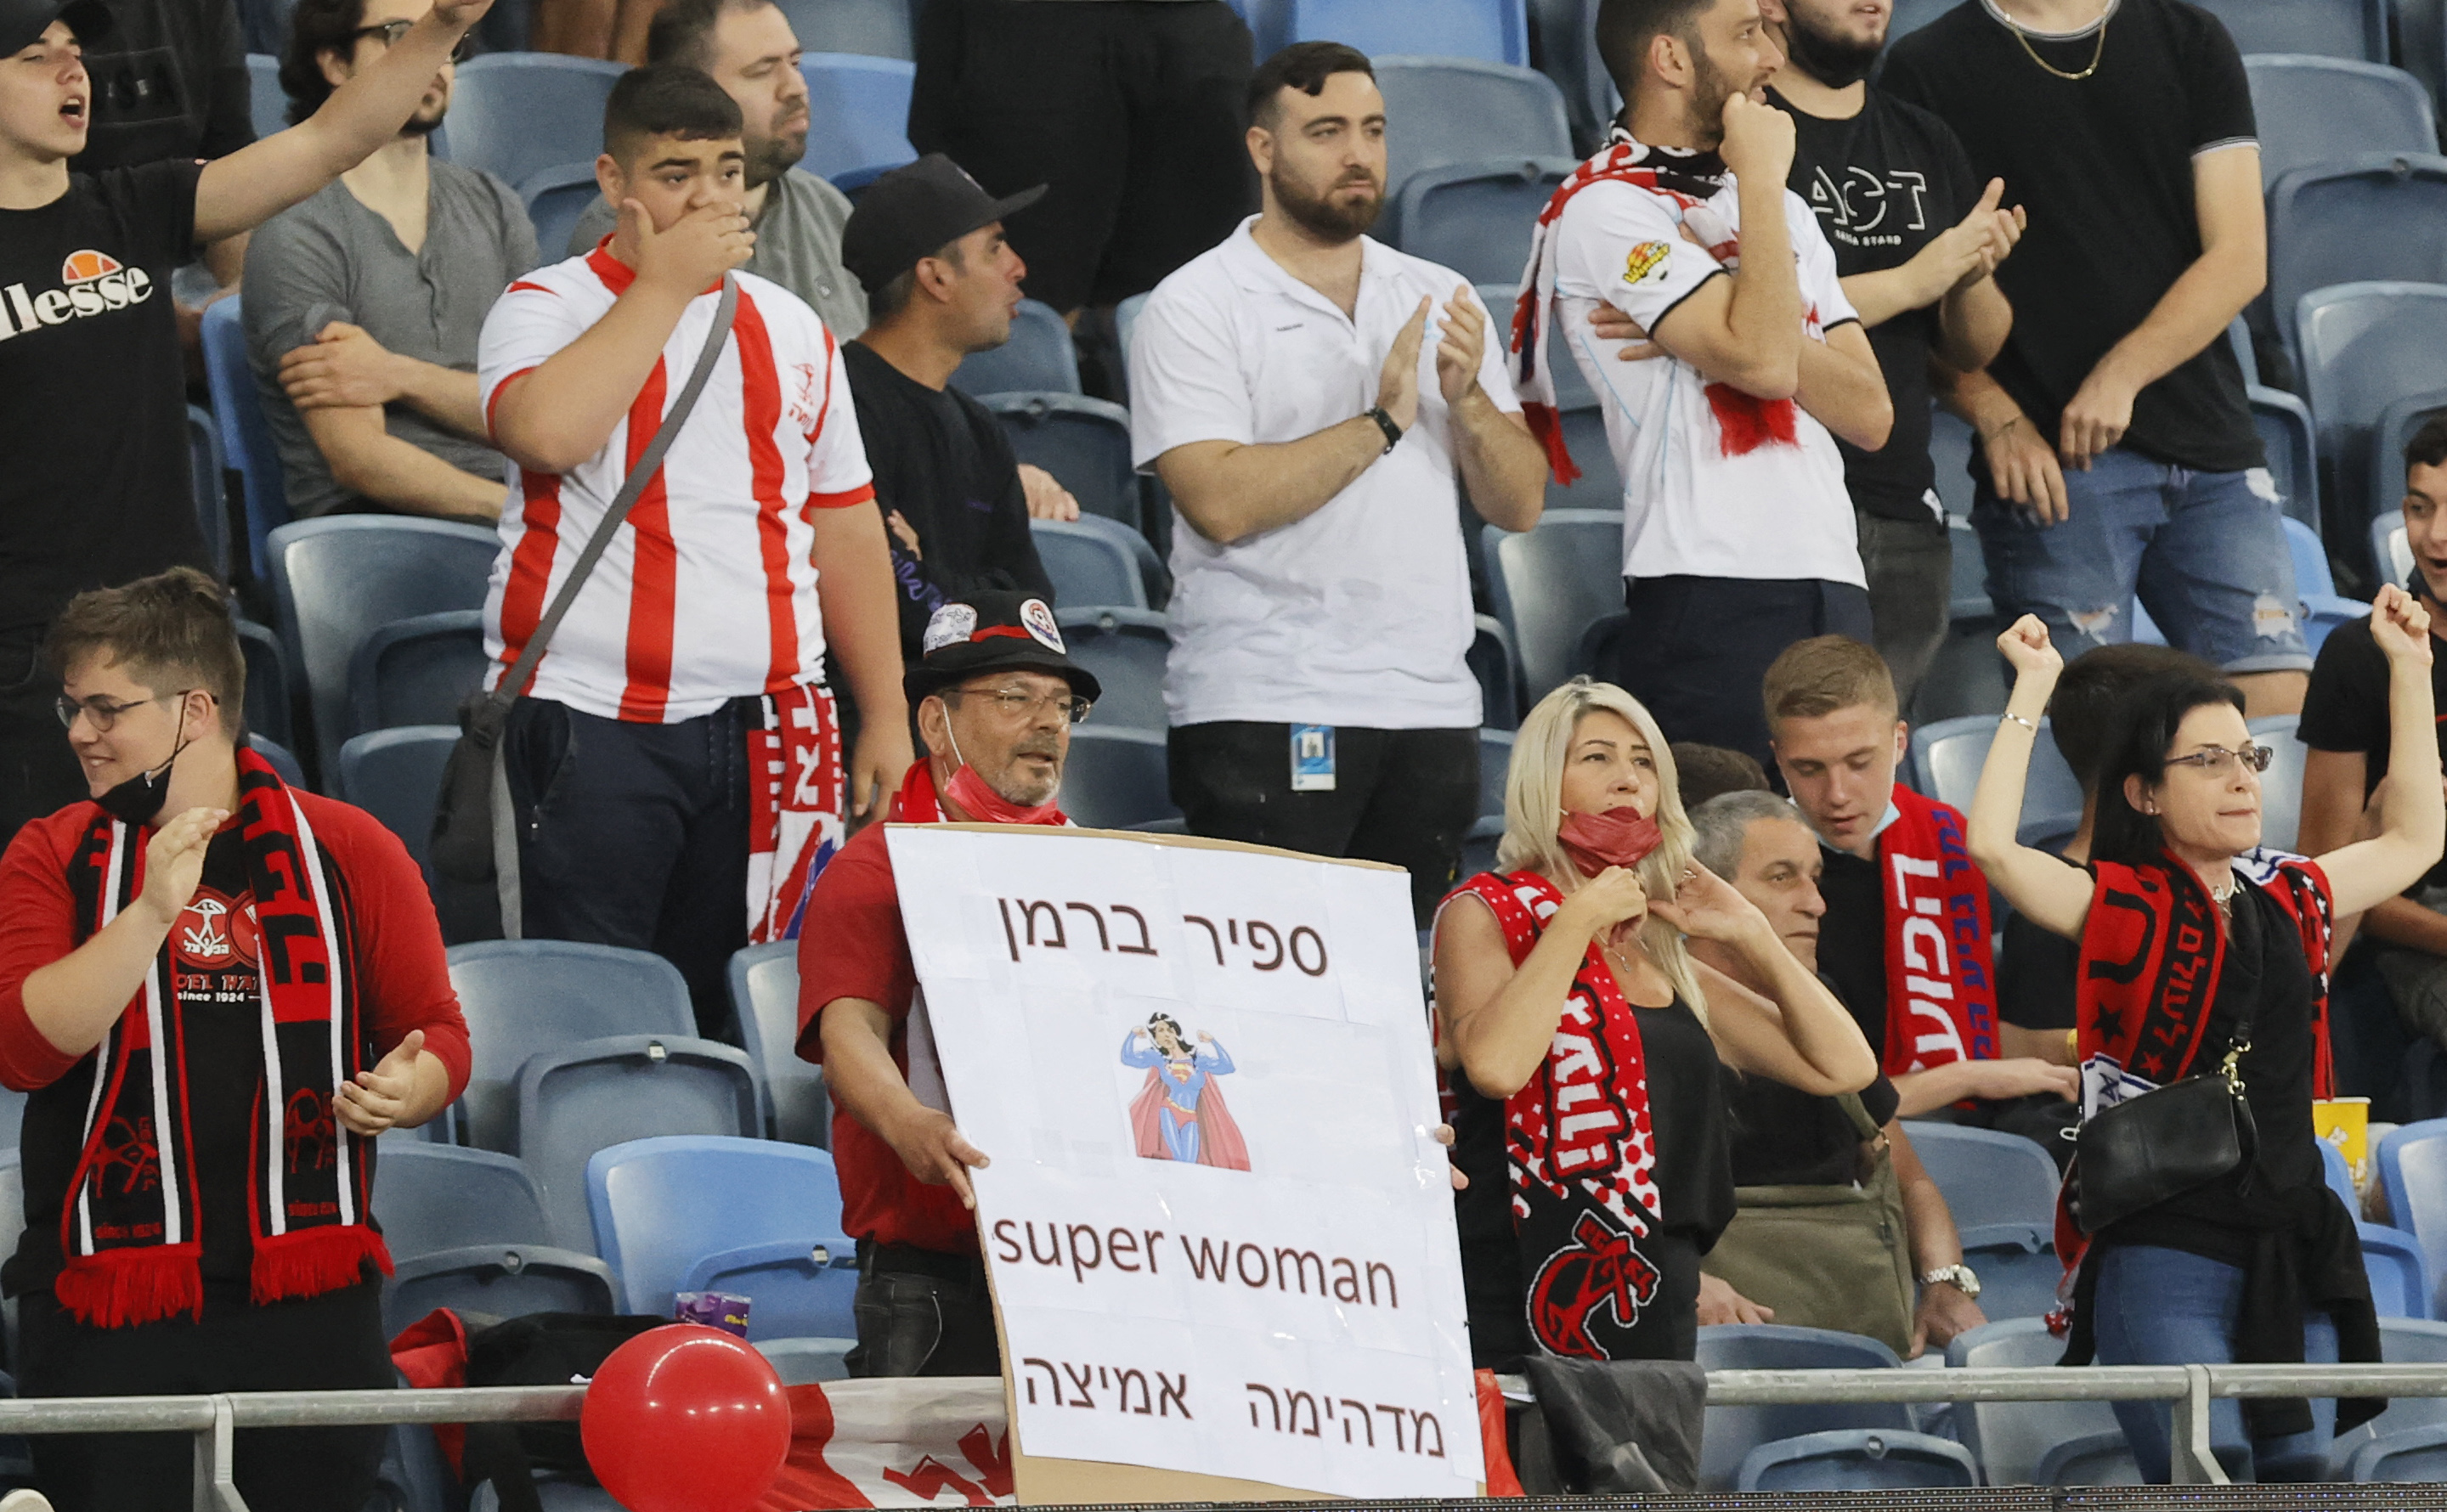 A Hapoel Haifa fan holds up a sign supporting Berman prior to the game. Photo: JACK GUEZ/AFP via Getty Images